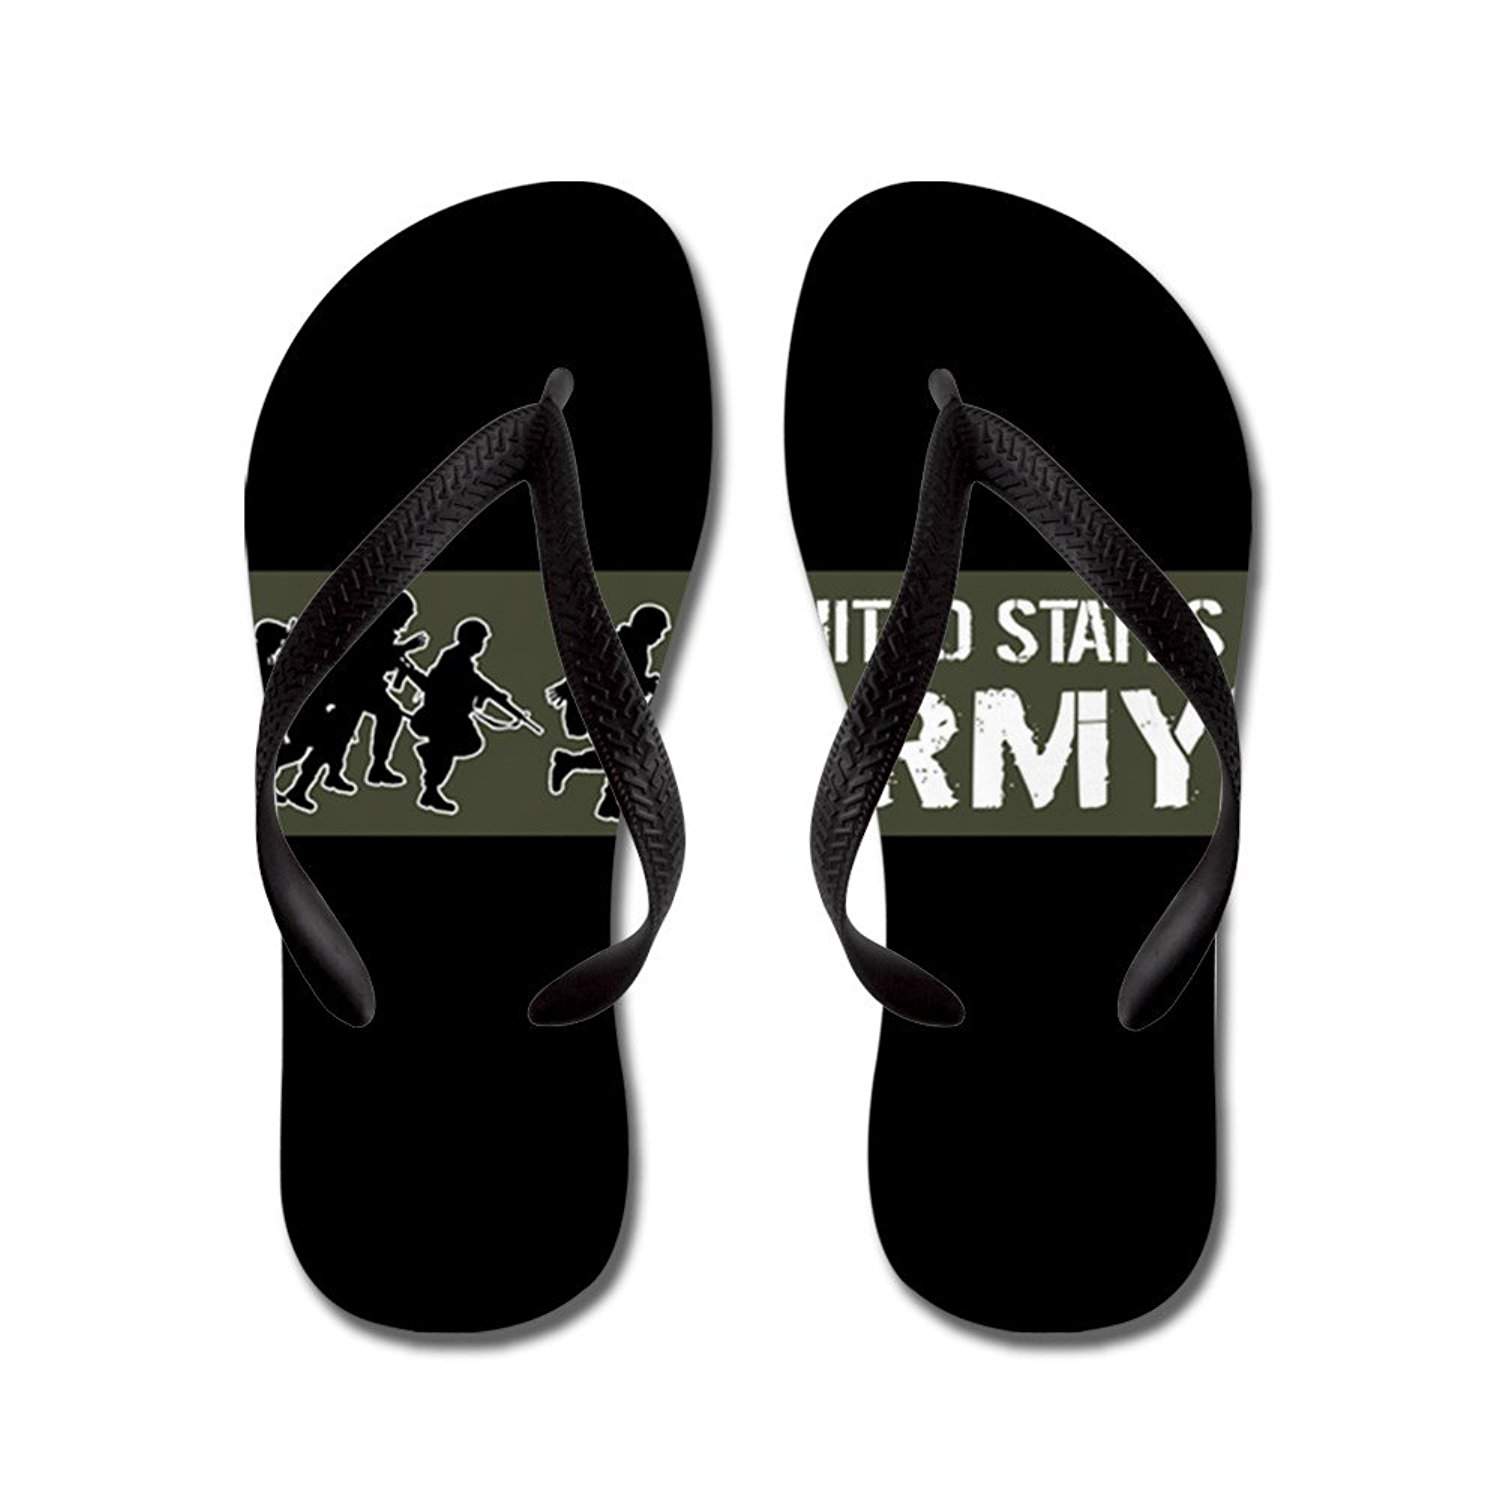 4a877ebfedd Get Quotations · CafePress U.S. Army  United States Army (Military - Flip  Flops